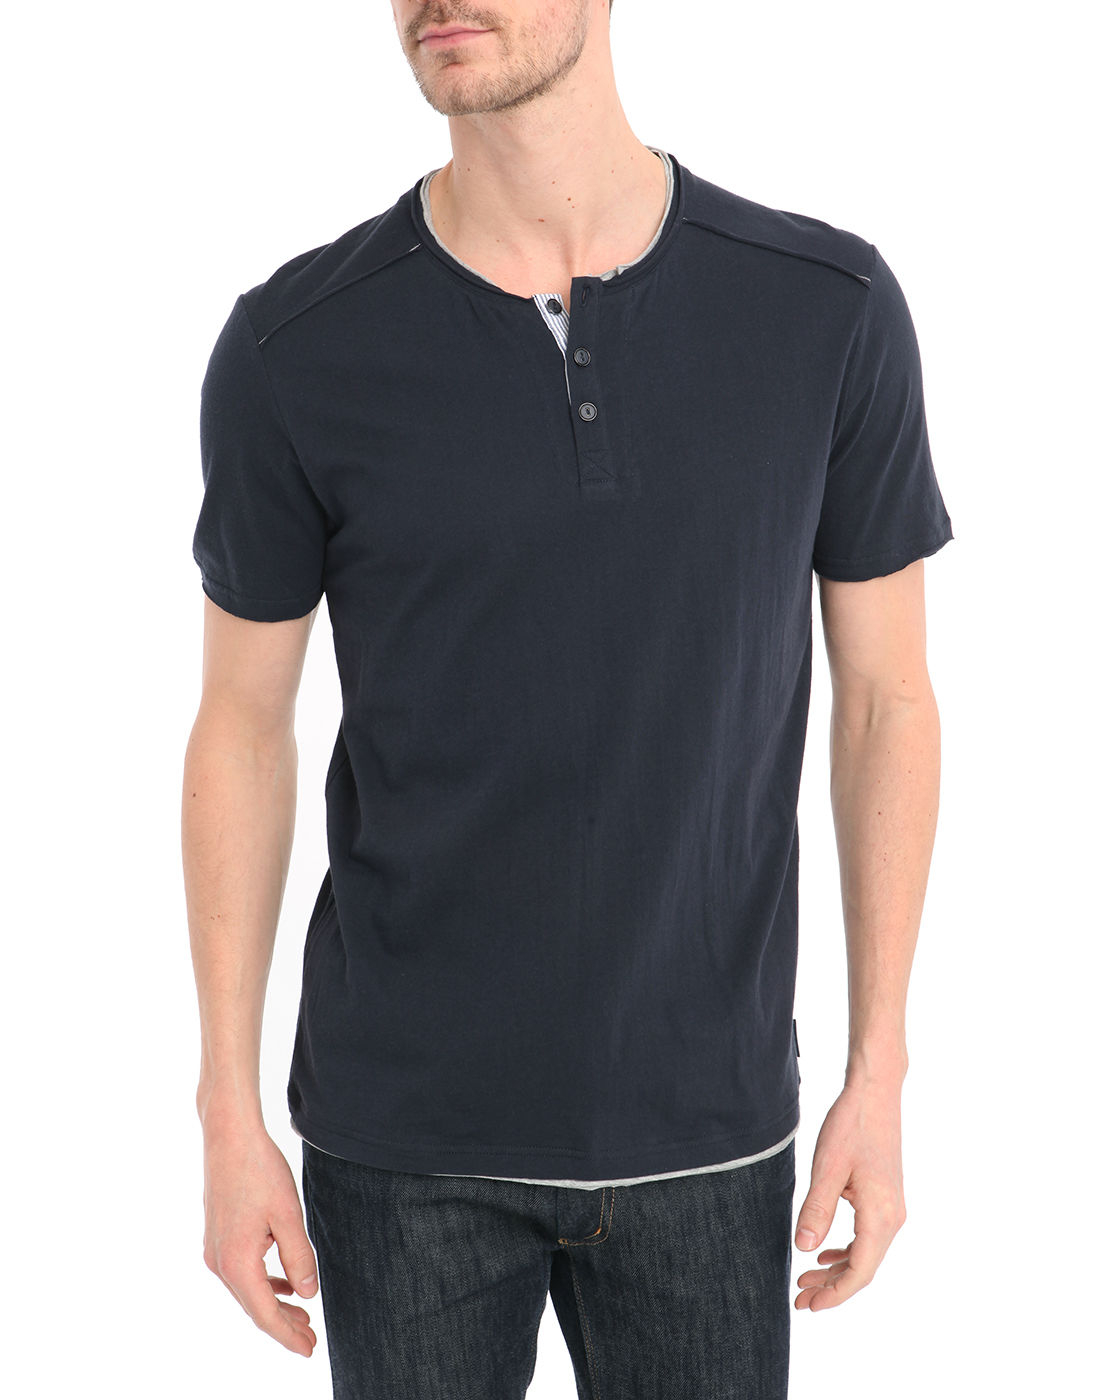 Harris wilson navy t shirt with double button up collar in for 3 button shirt collar